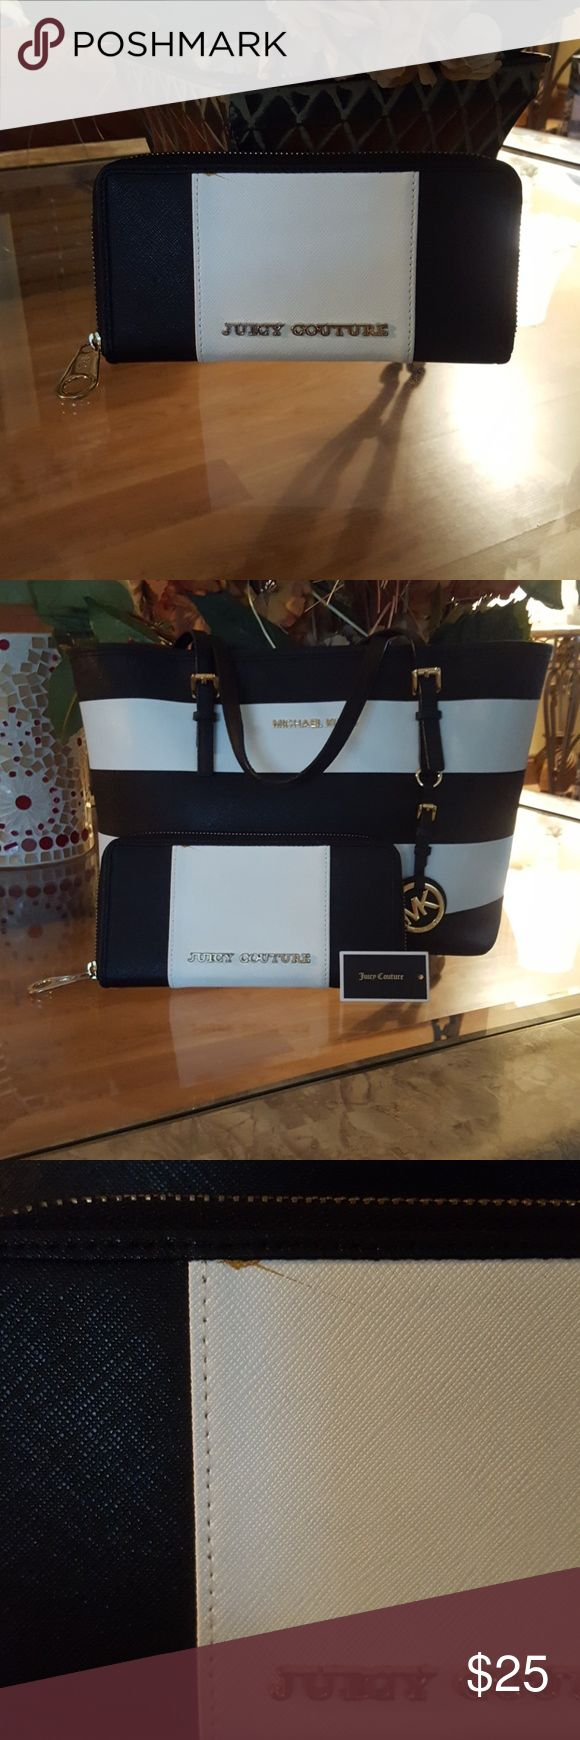 Juicy Couture wallet! In great condition. Exterior has a yellow stain as seen in picture i bought it like that, juicy Couture label a little rusty other than that in excellent condition. Interior excellent condition. Matches my MK jet set in selling! Make offer! Juicy Couture Bags Wallets